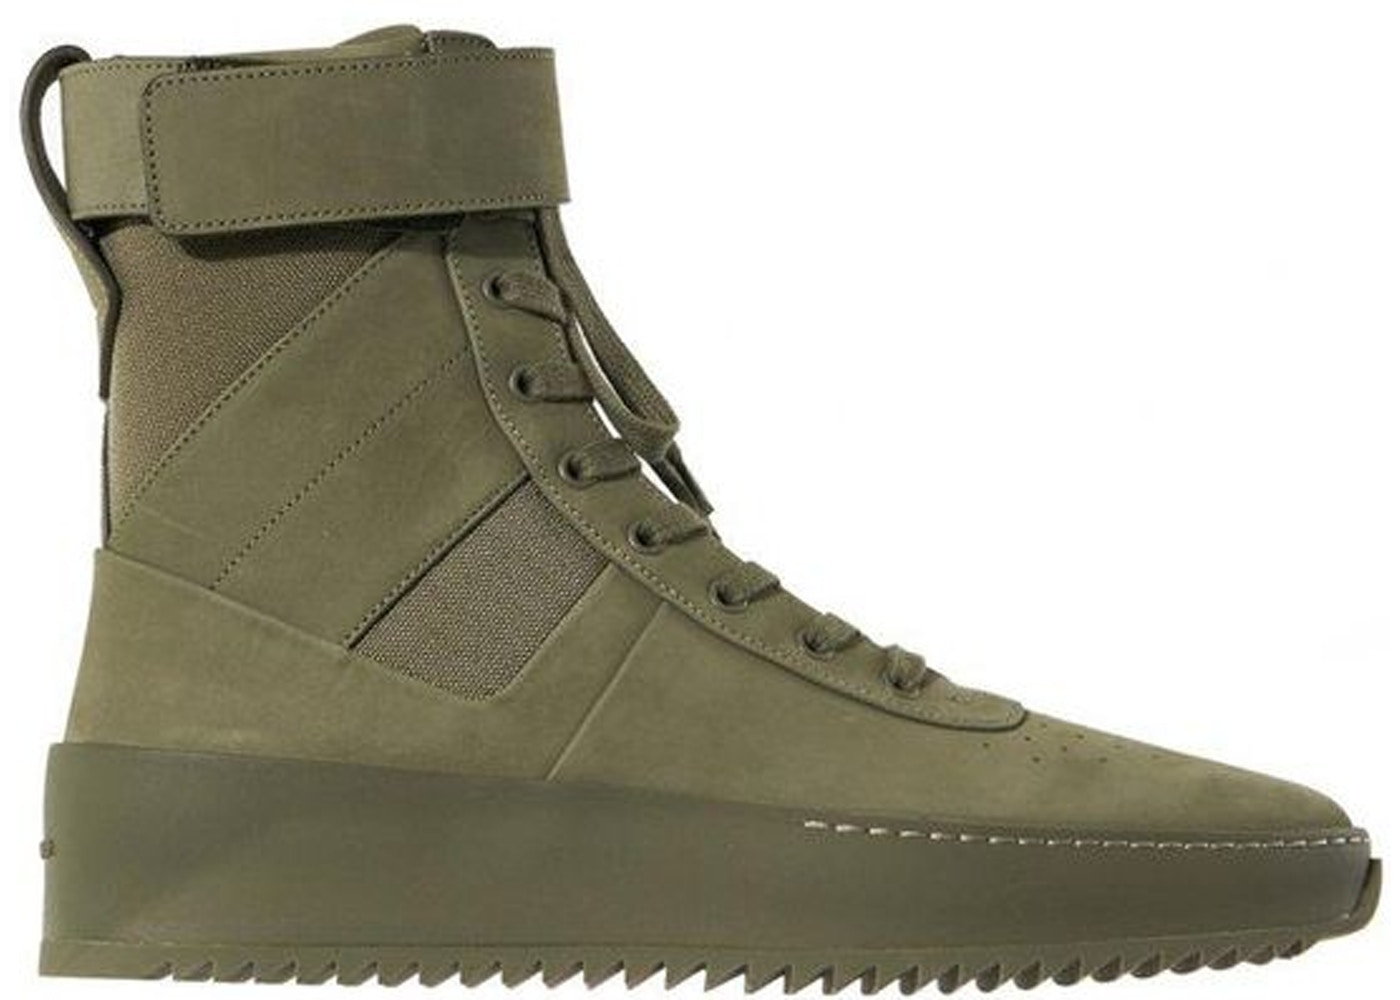 new concept 4fd58 19a2a Fear Of God Military Sneaker Army Green - FGTP-MSNU-AG16